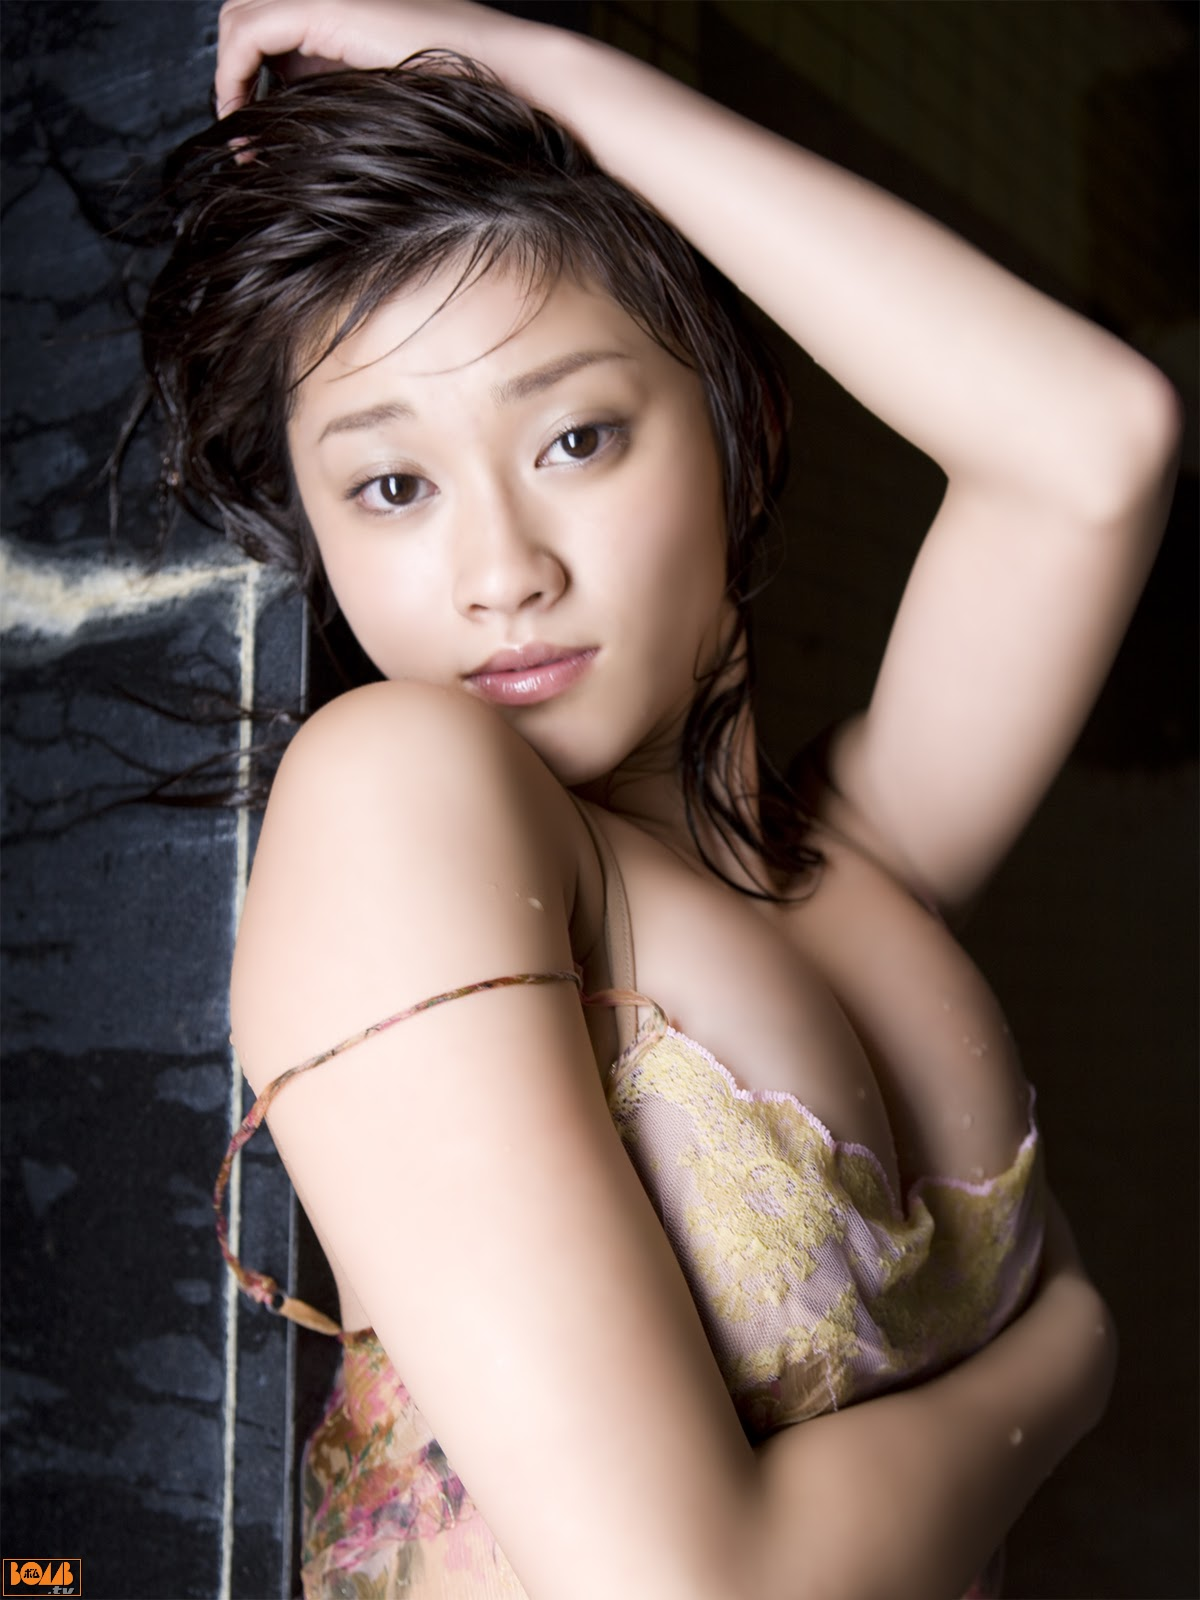 All kinds of redweathered skin sweaty skin smiles in the morning light Mikie Hara031